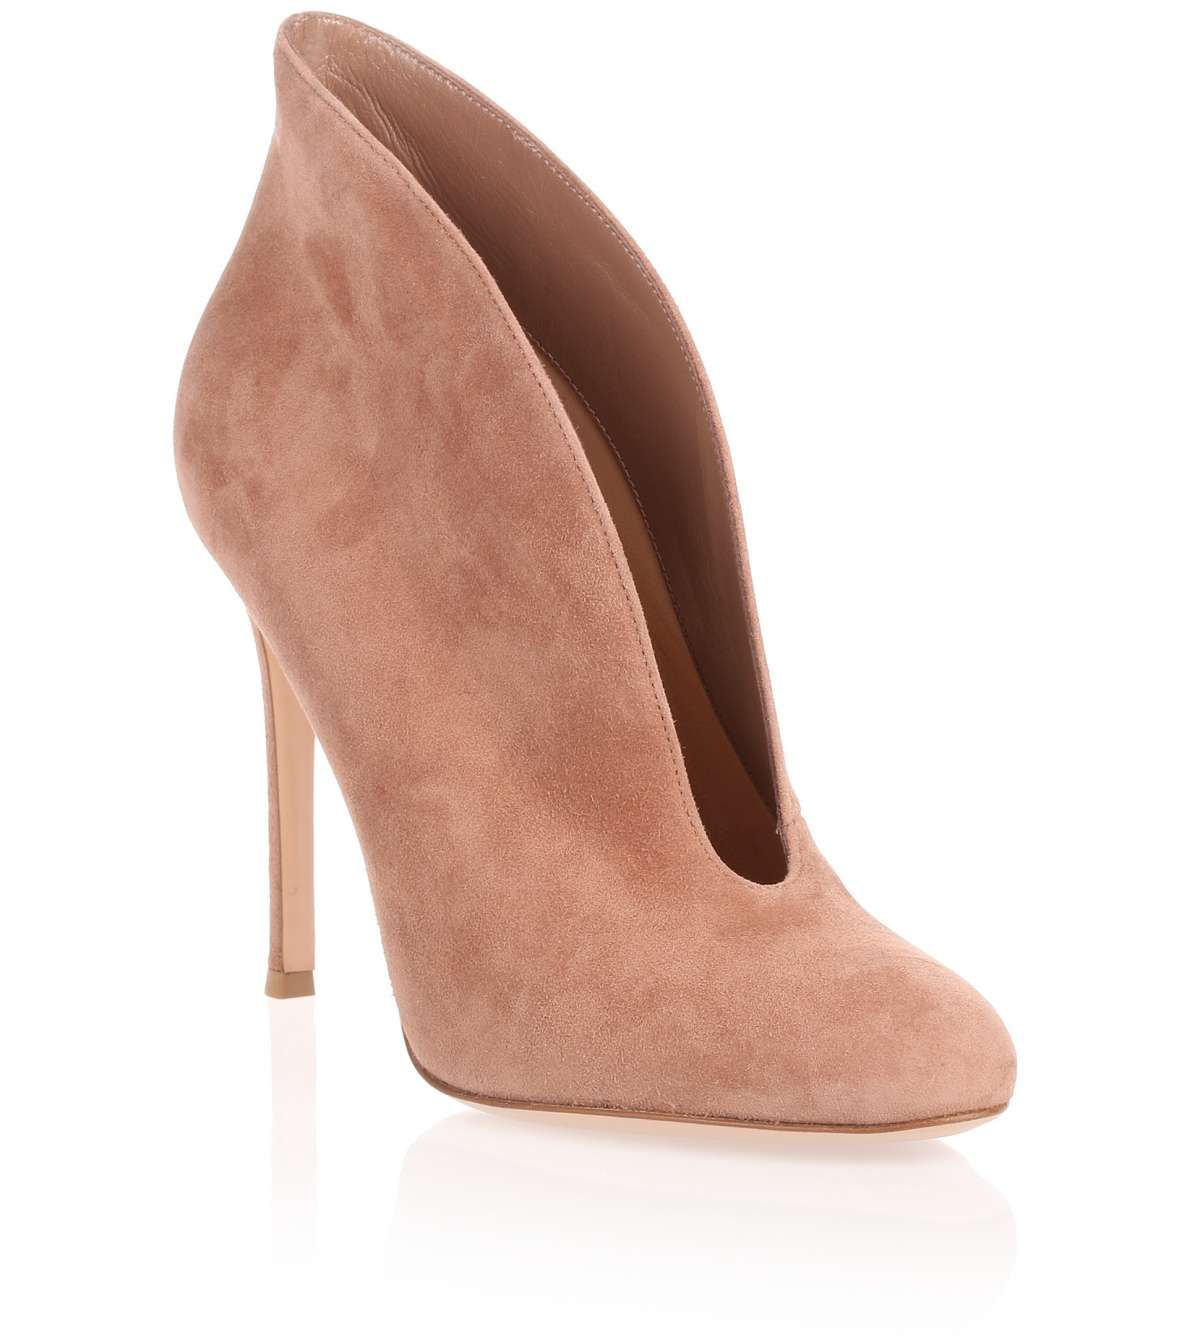 Dark nude suede cut-out Vamp bootie from Gianvito Rossi. The Vamp bootie has